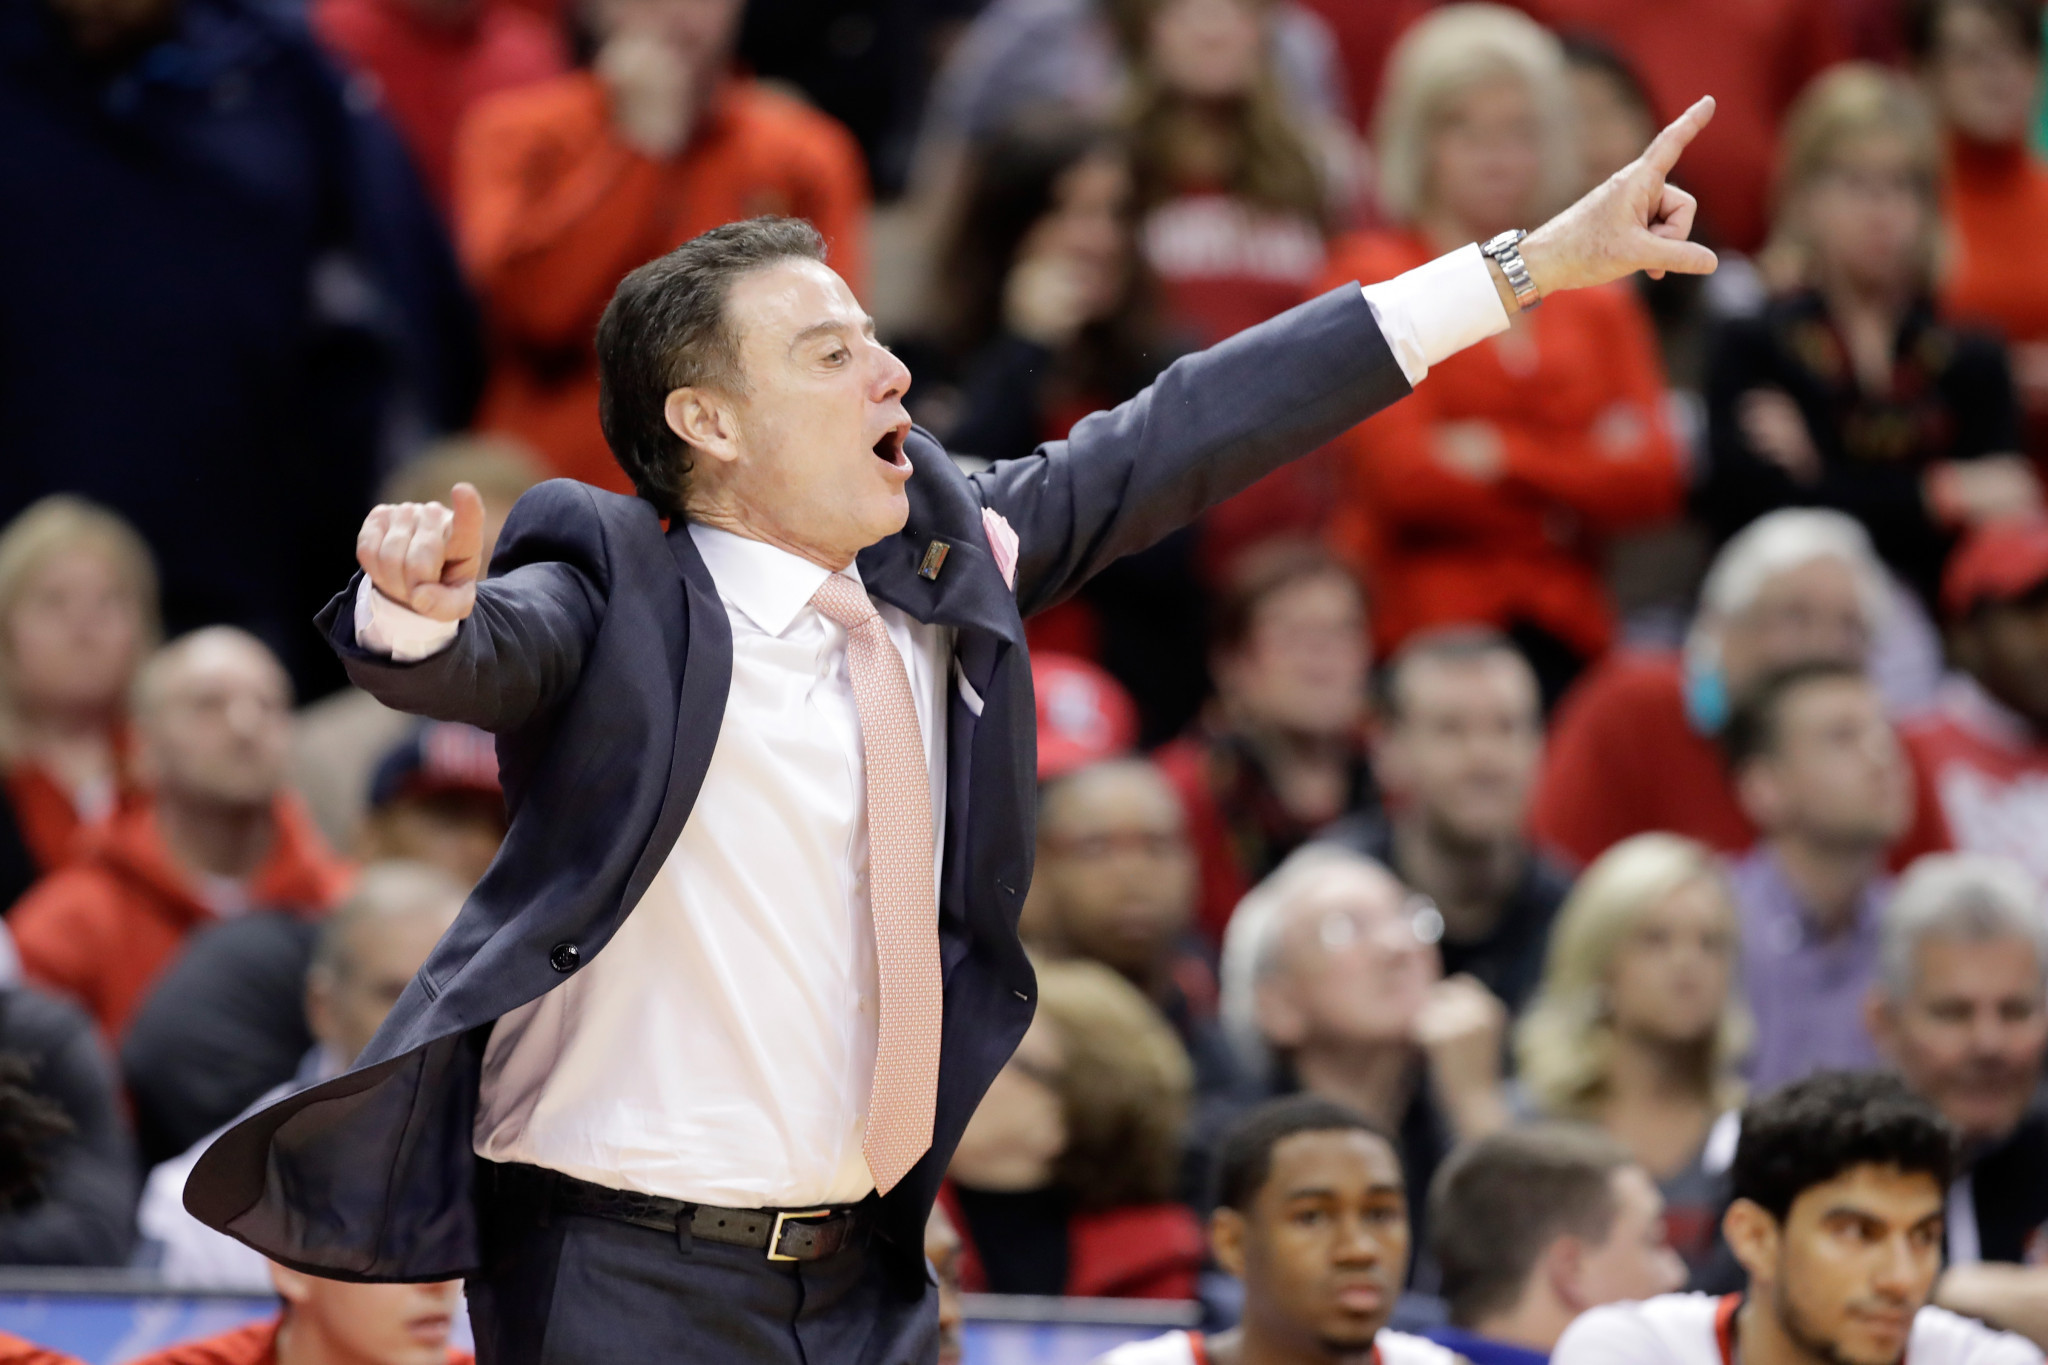 Pitino plans to lead Greece's men's basketball team at Tokyo 2020 qualifiers